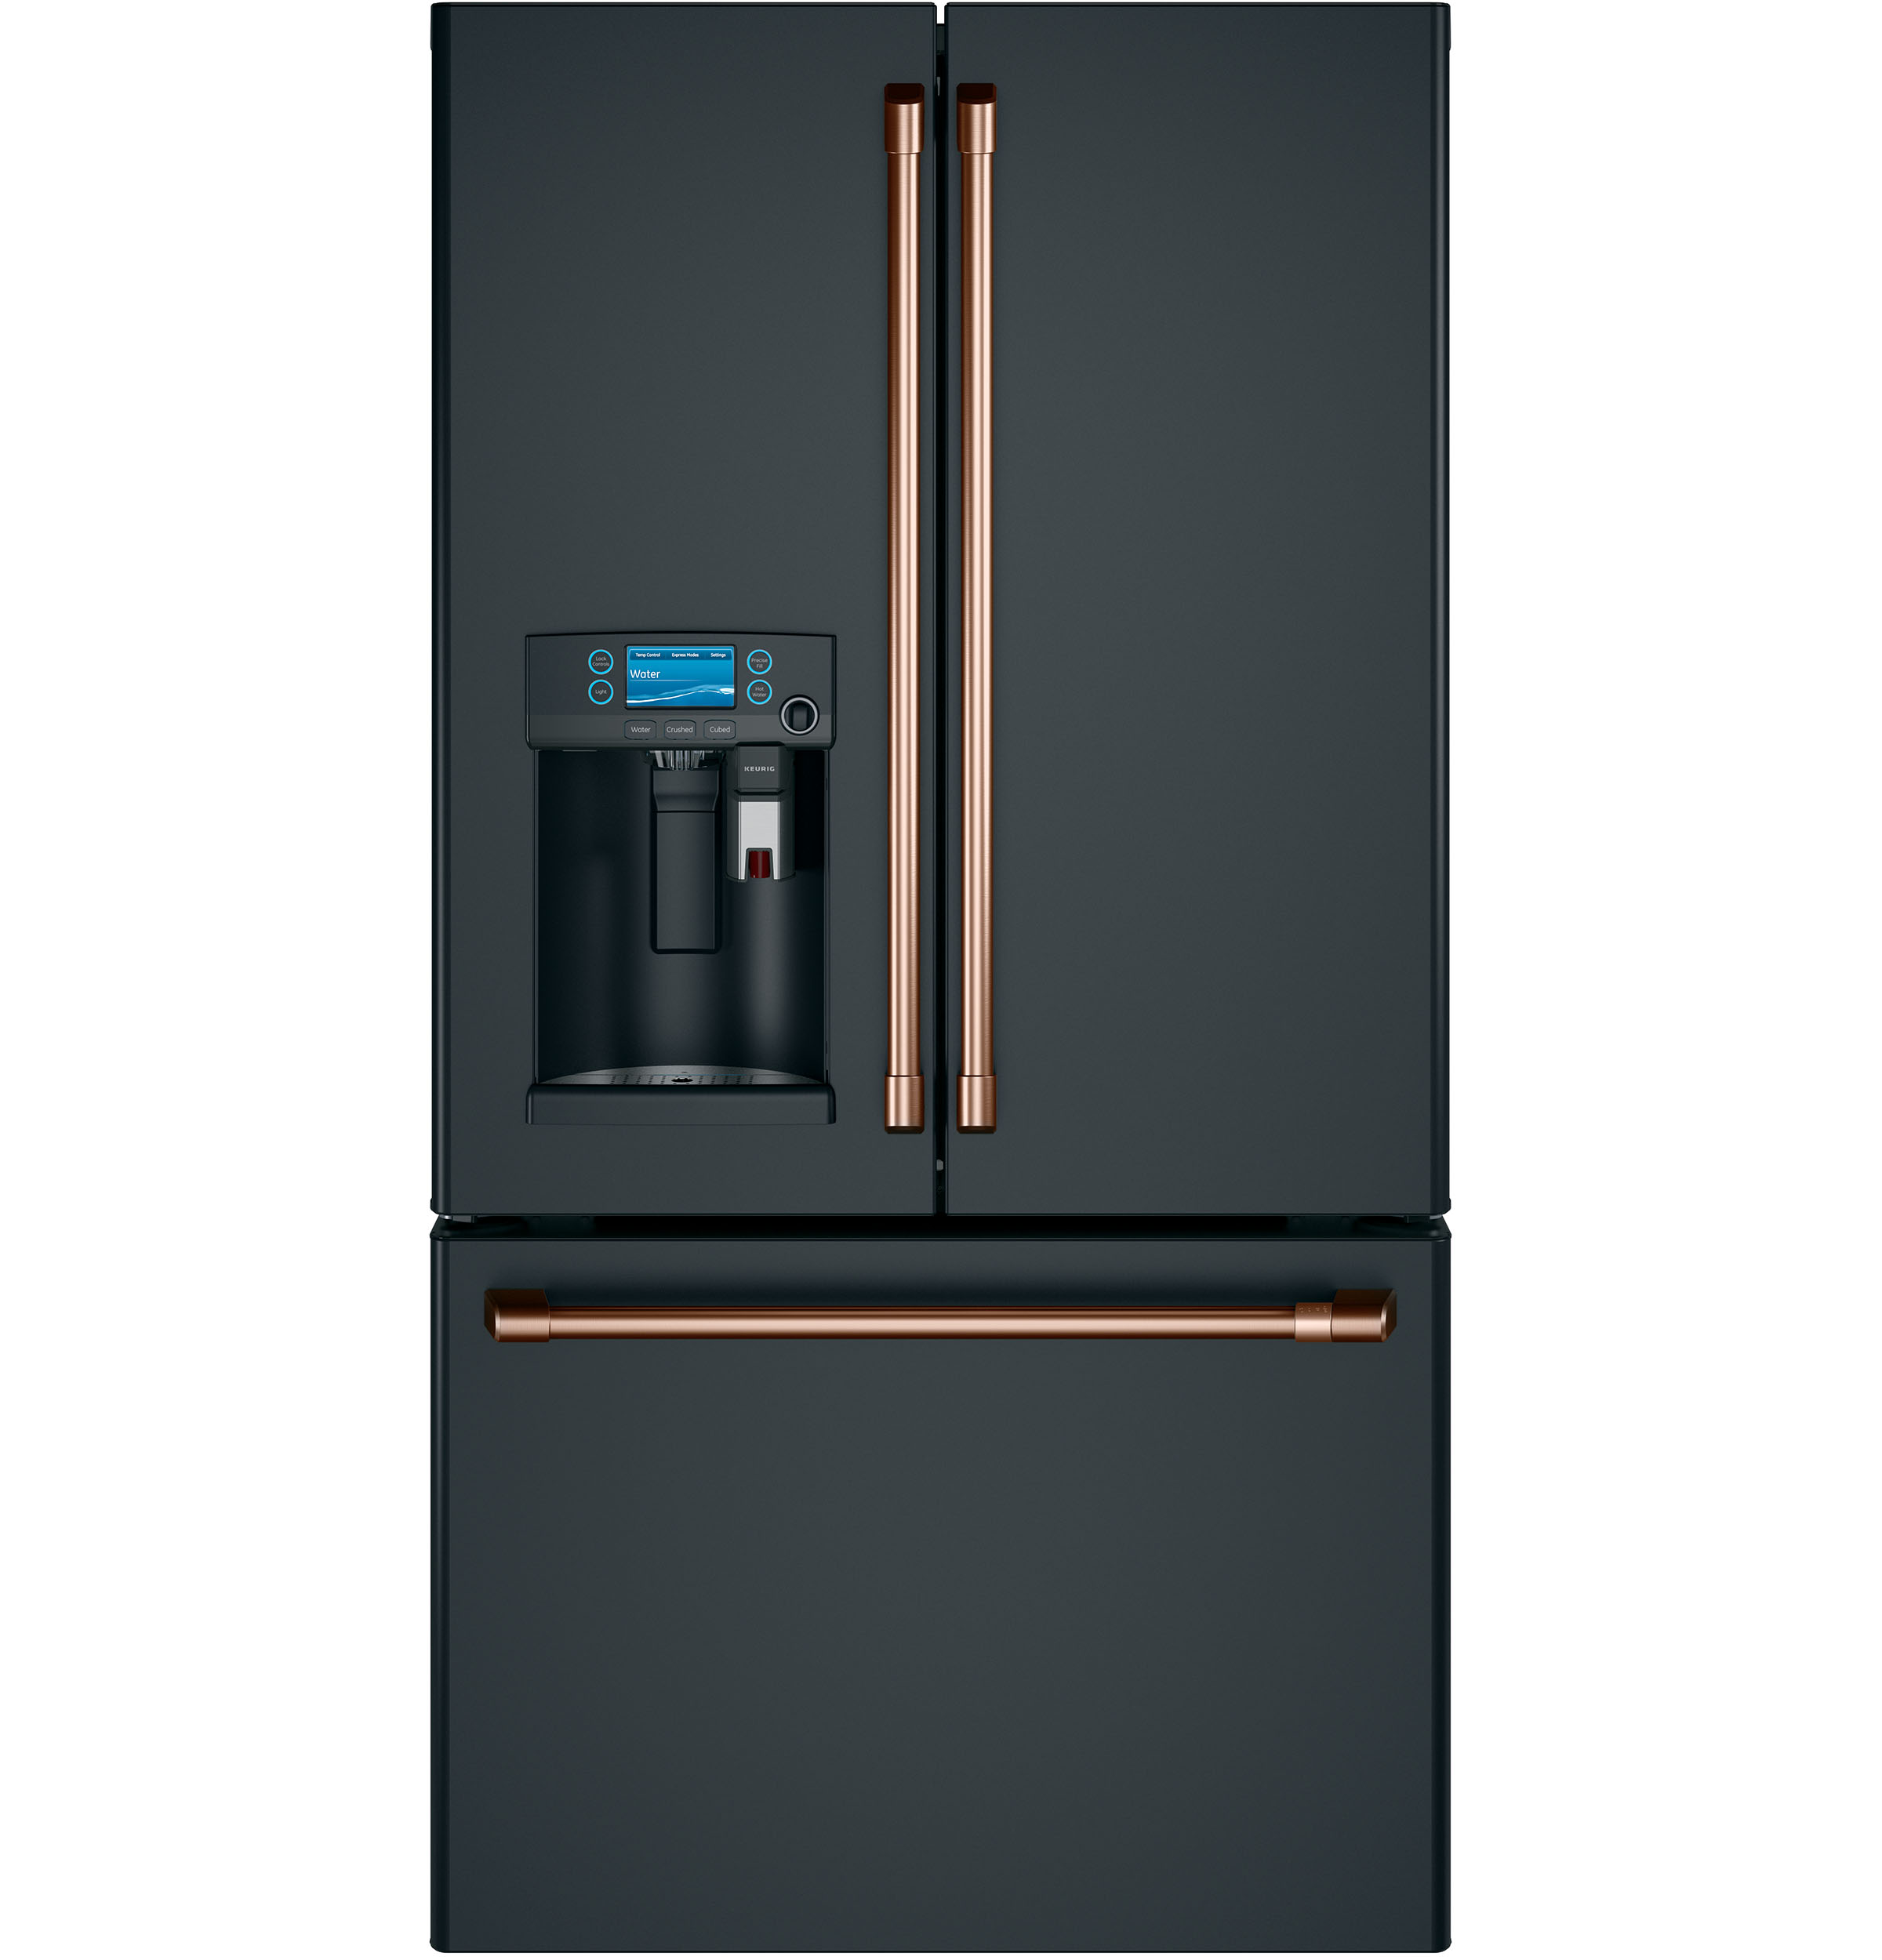 Model: CFE28UP3MD1 | Cafe Café™ ENERGY STAR® 27.8 Cu. Ft. French-Door Refrigerator with Keurig® K-Cup® Brewing System